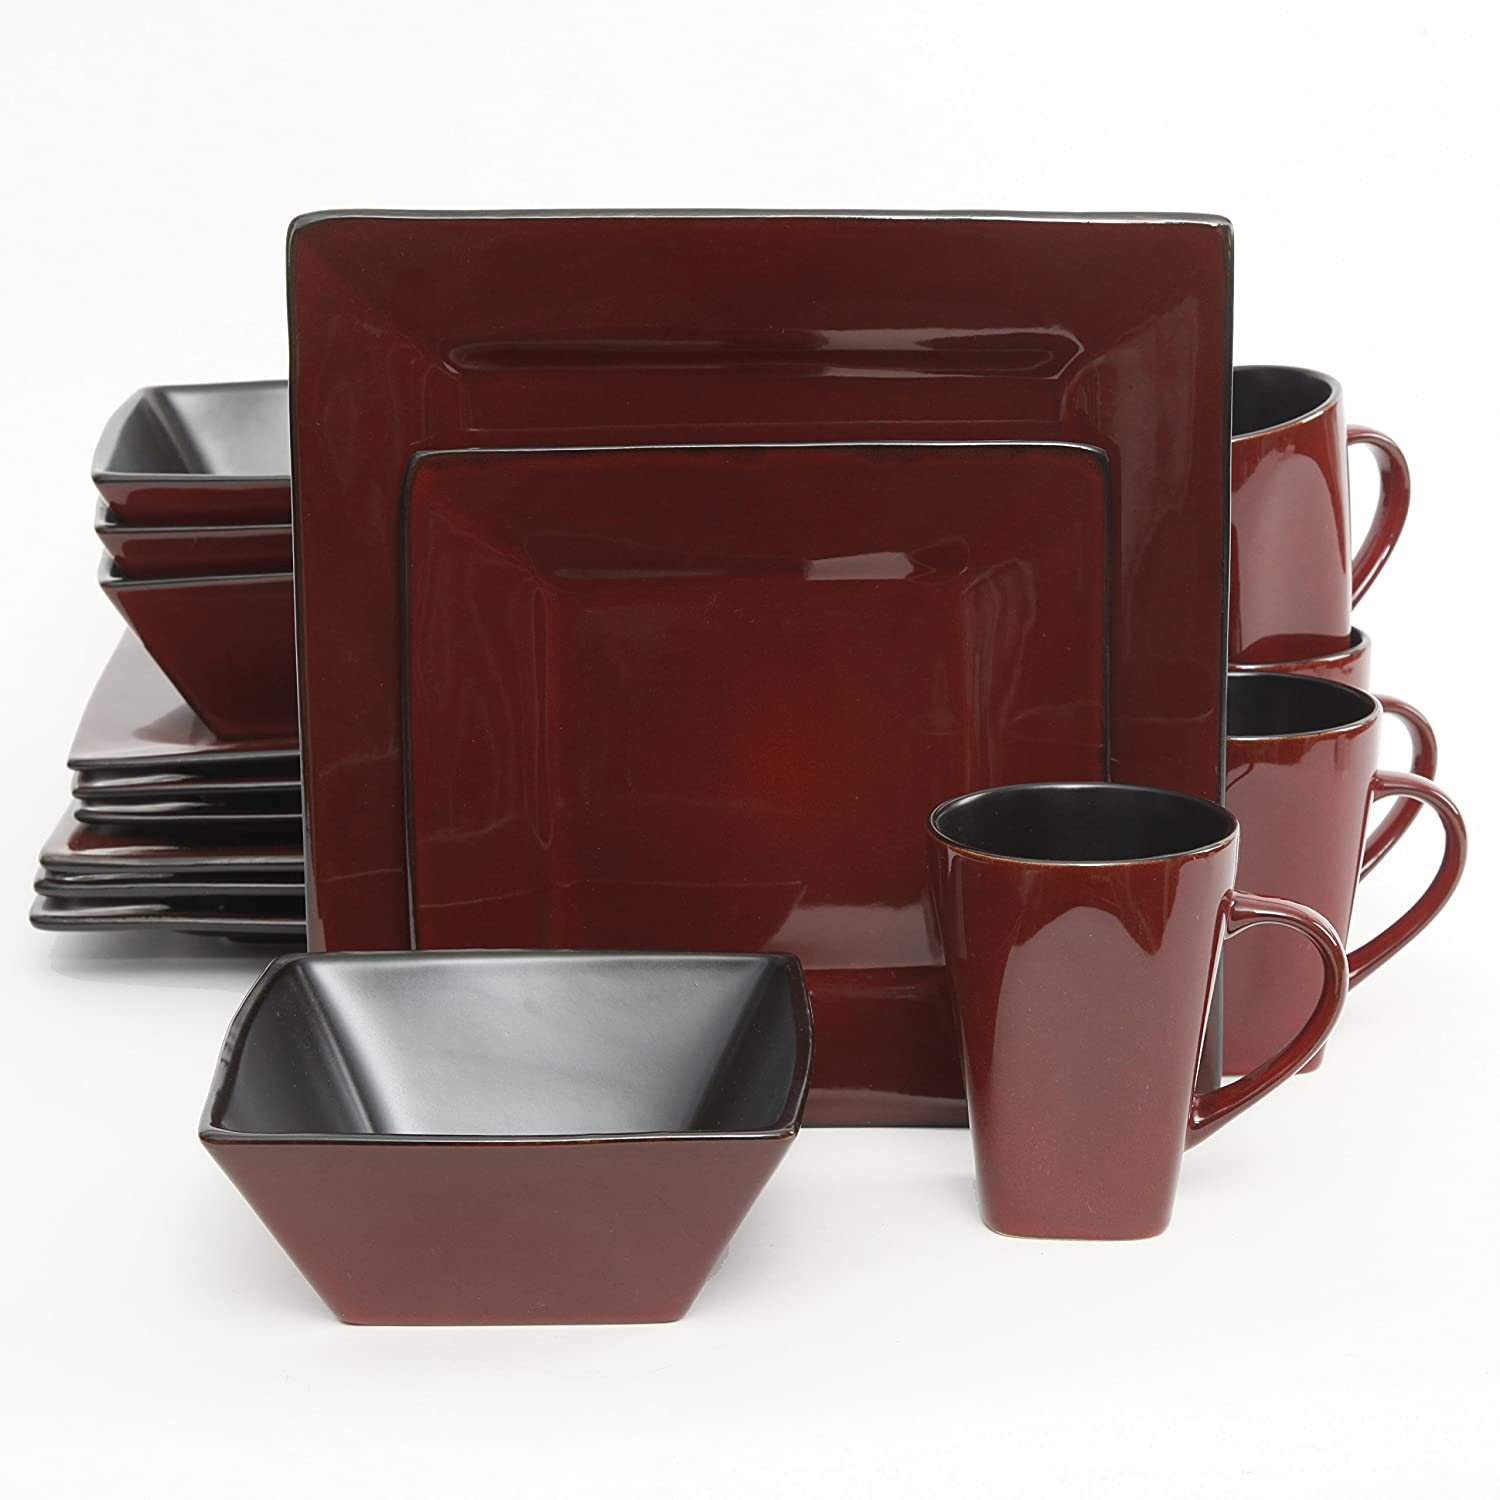 Amazon.com Gibson Kiesling 16 Piece Dinnerware Set Red/Black Kitchen u0026 Dining  sc 1 st  Amazon.com : red square plates set - pezcame.com